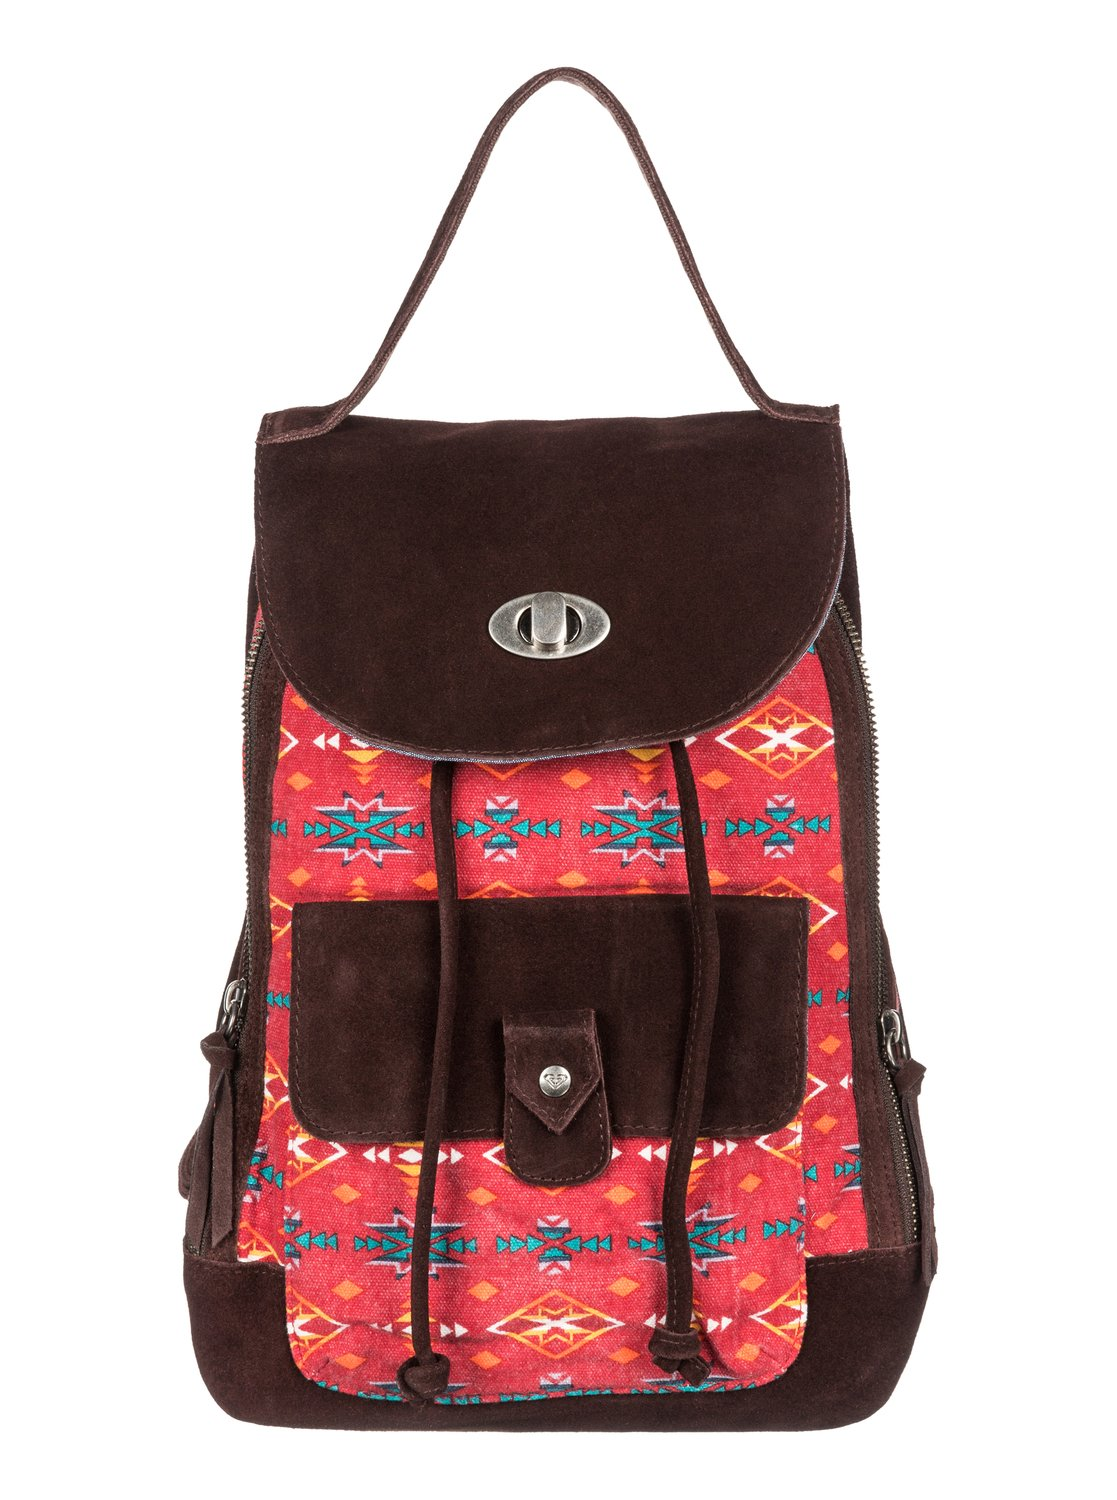 roxy backpack purse Backpack Tools